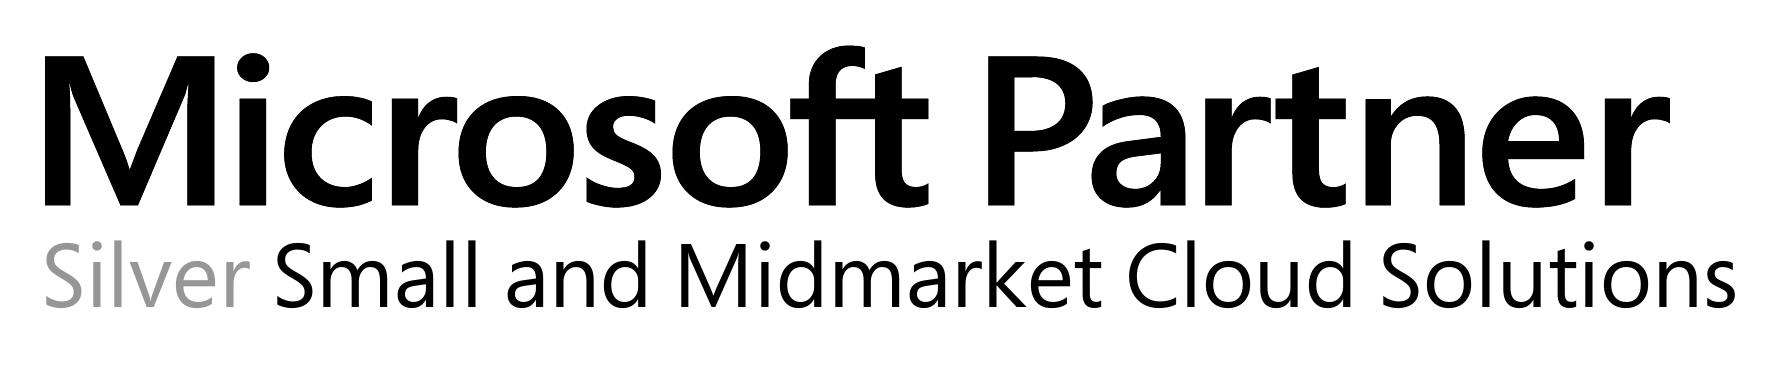 Microsoft partner Logo Cloud Solutions